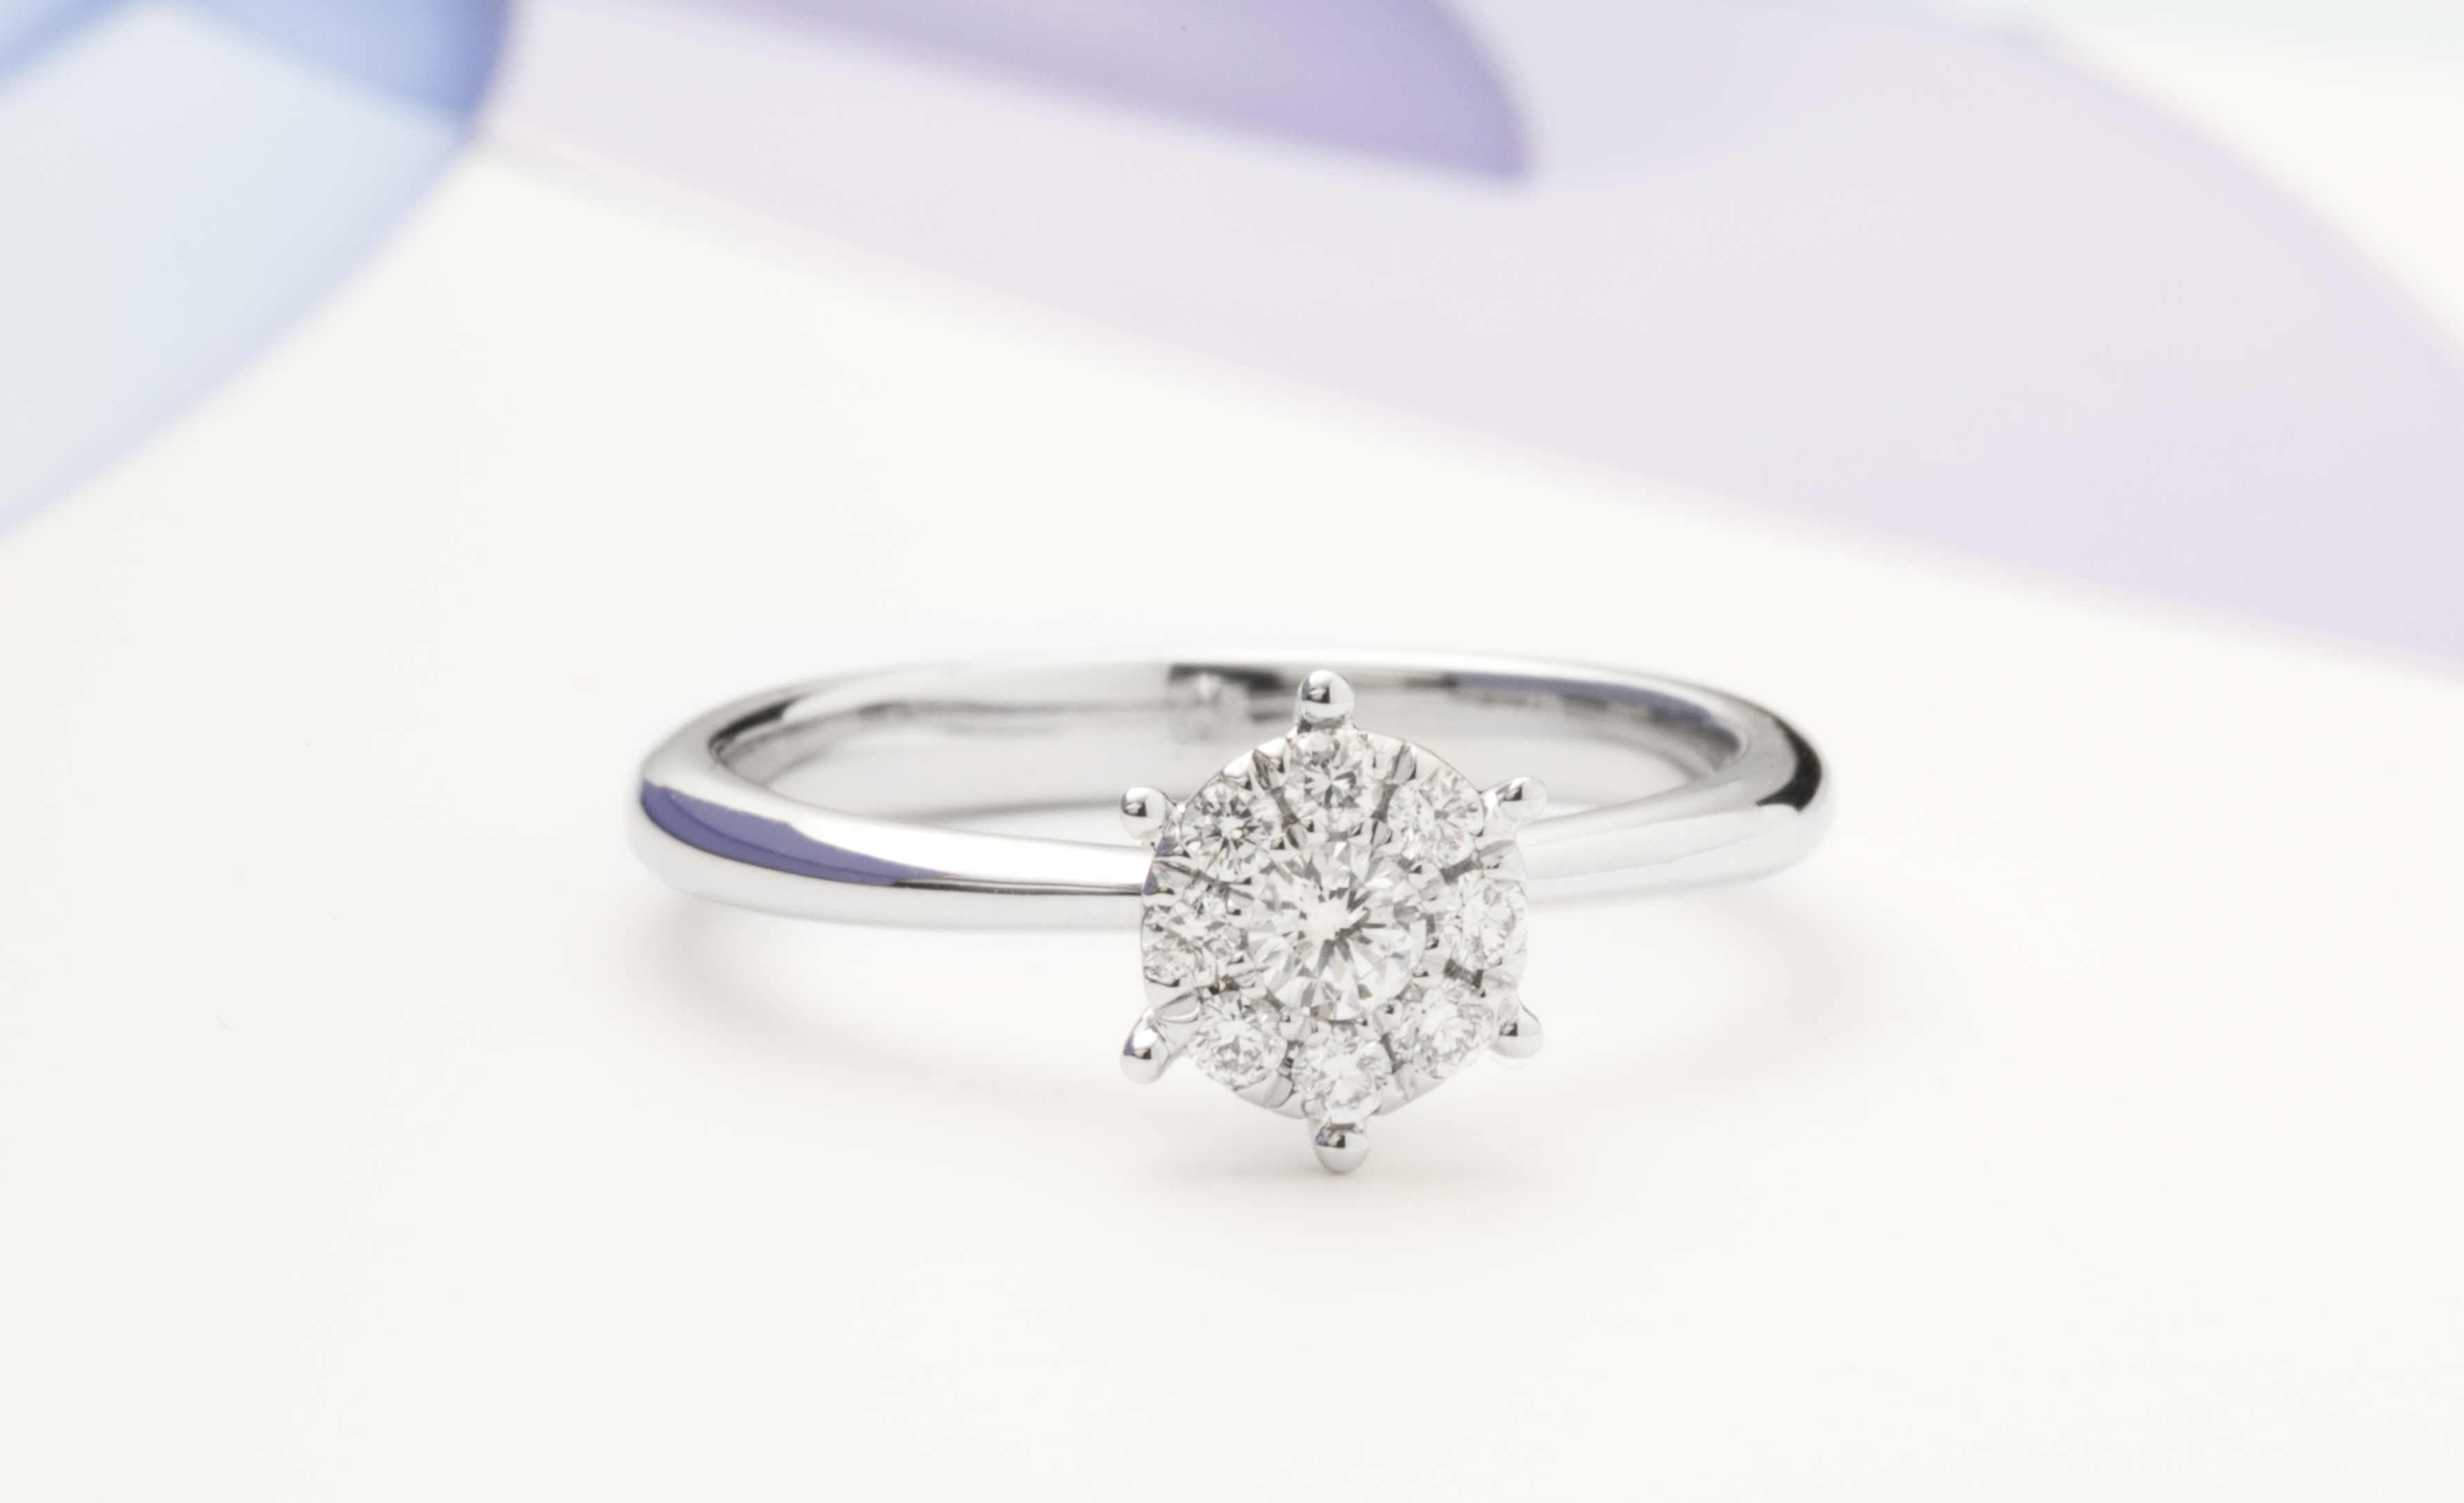 the average price of an engagement ring chocolate diamond wedding rings Solitaire cluster ring